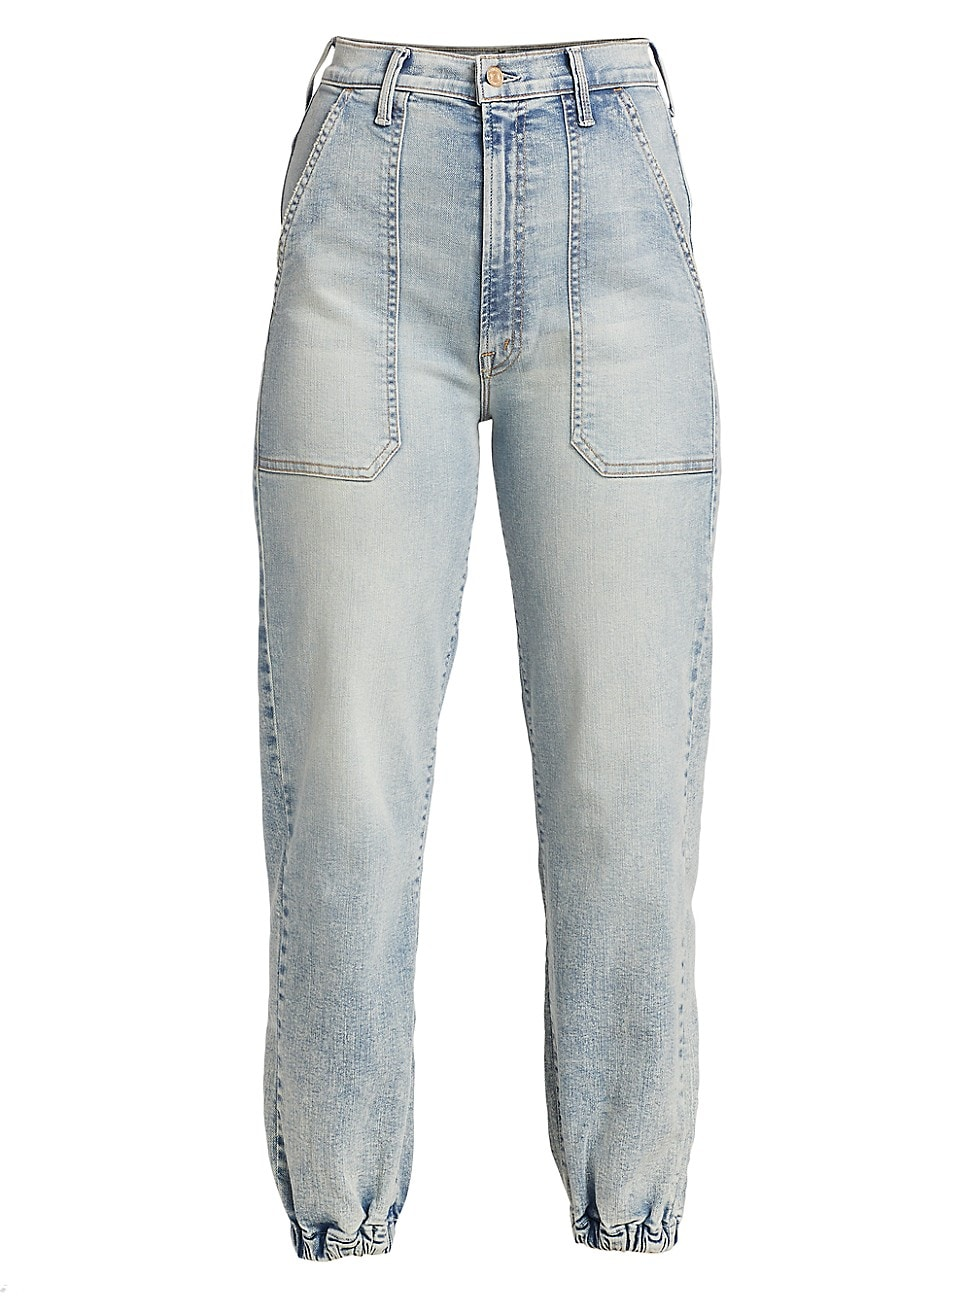 MOTHER WOMEN'S THE WRAPPER PATCH ANKLE JEANS